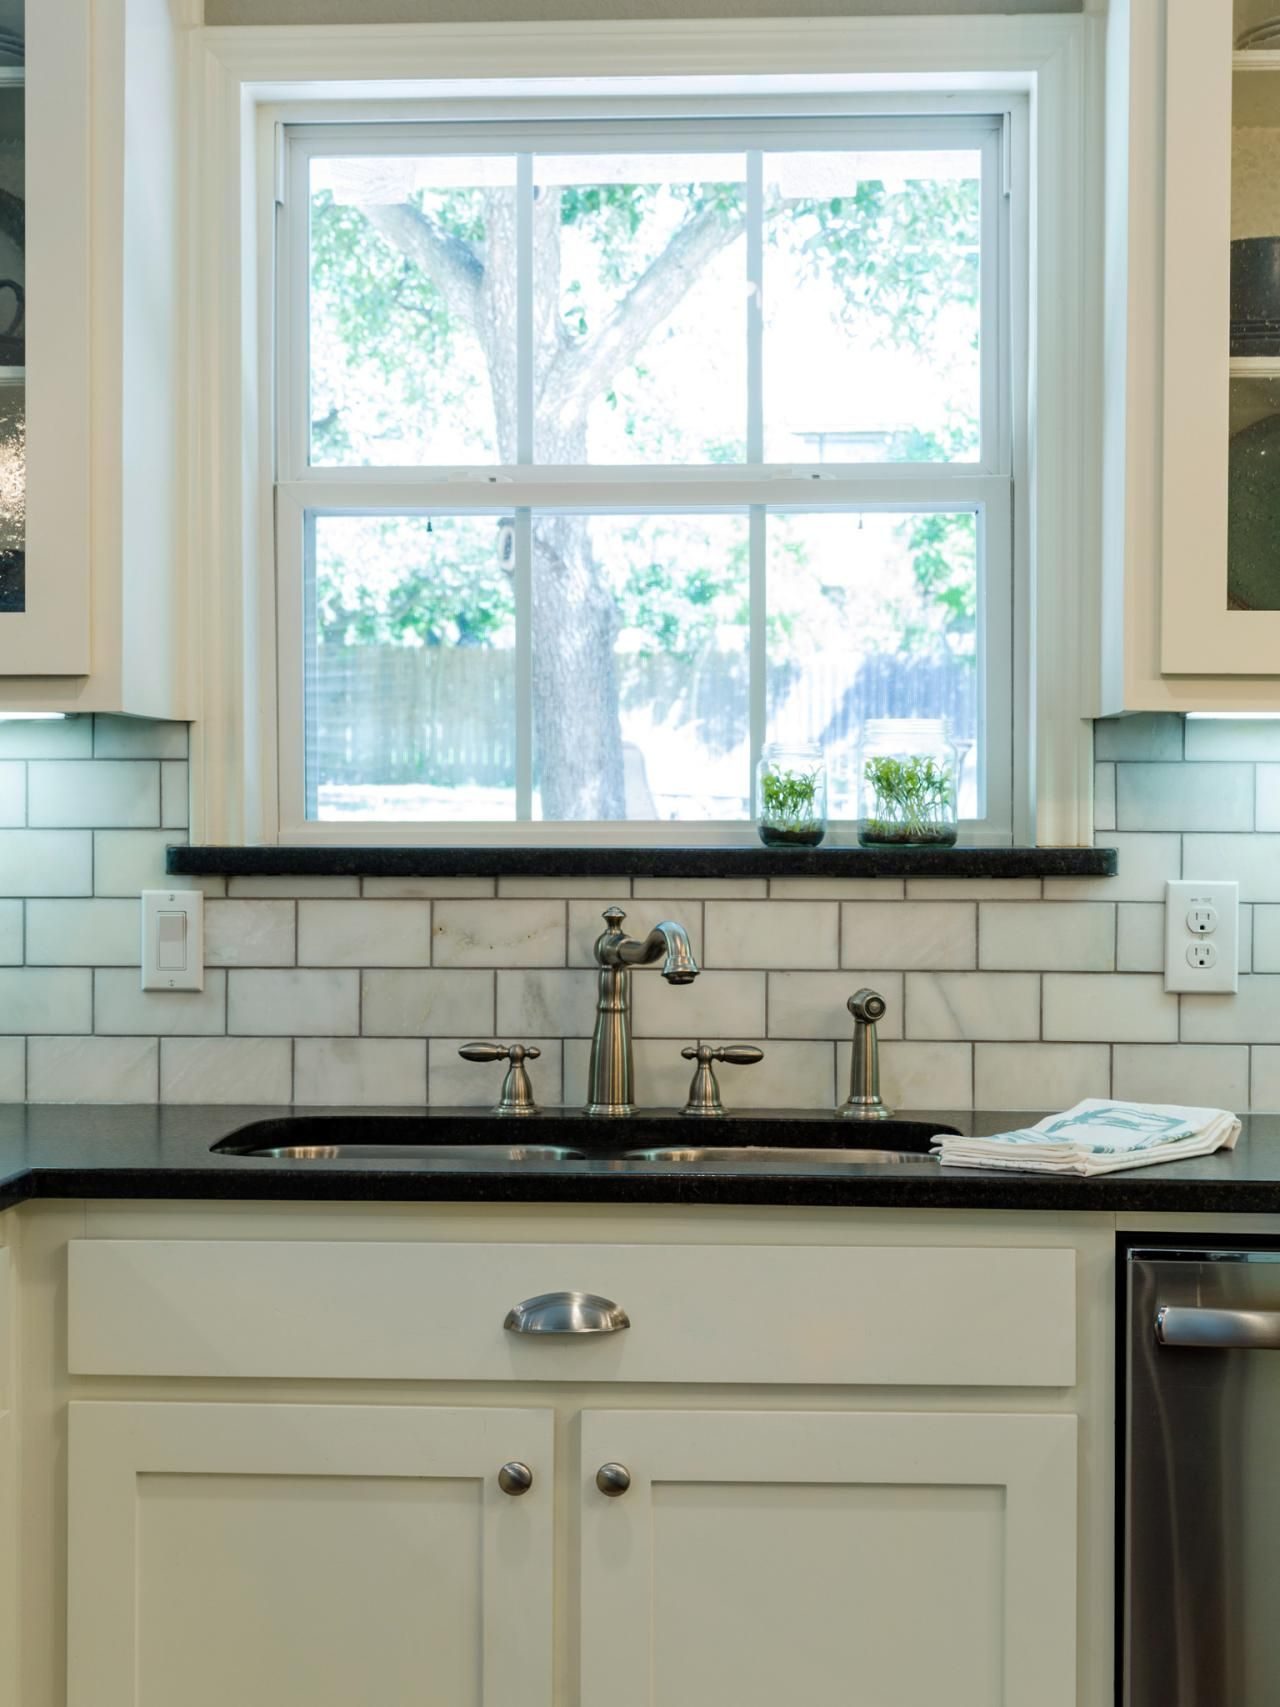 Backsplash Kitchen Window Images Of Chip And Joanna Gaines Kitchen Redo With Black